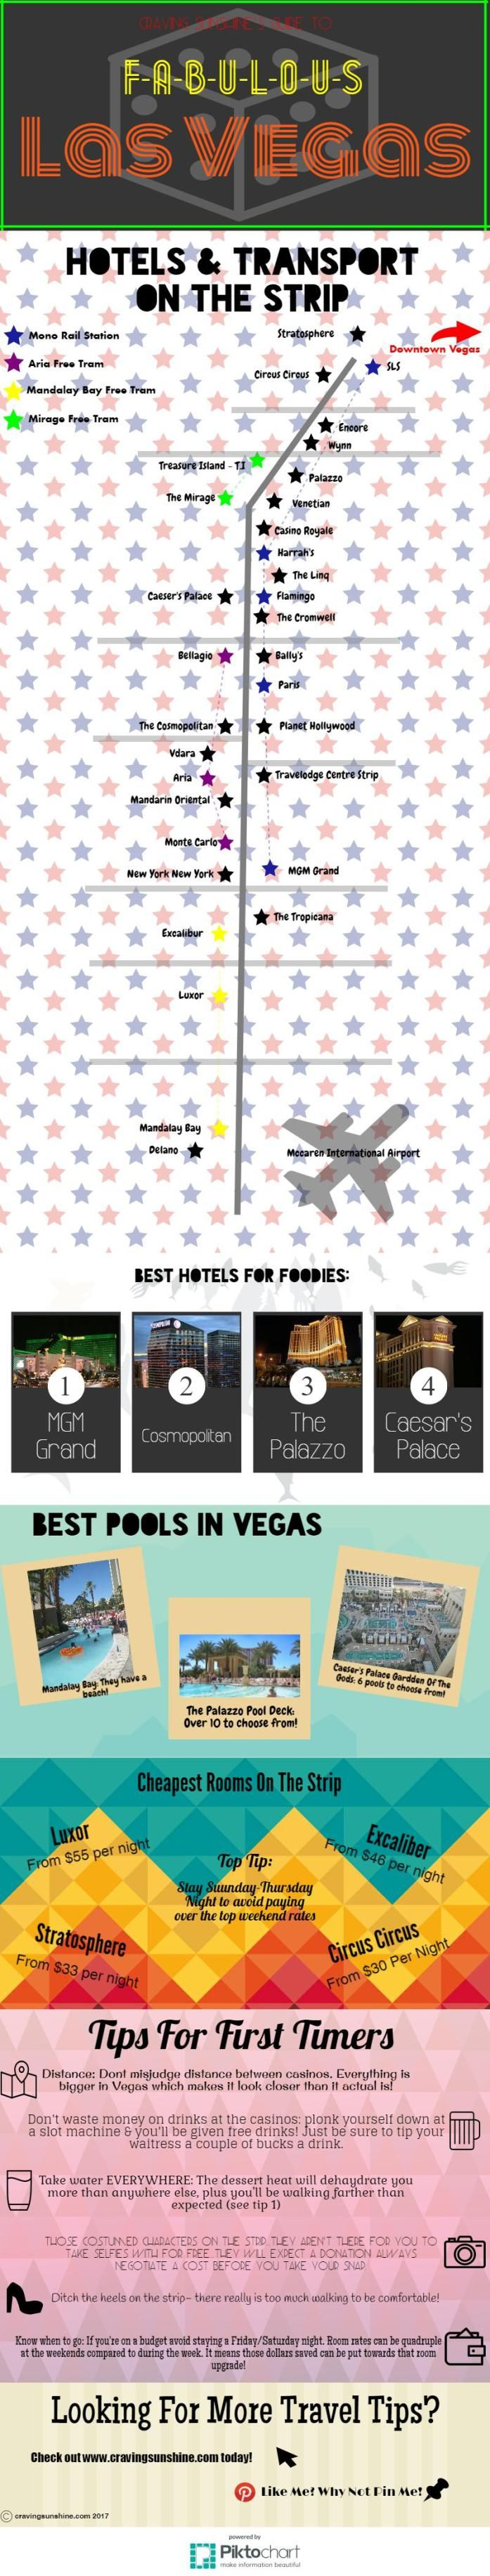 Looking for information on where to stay on the Las Vegas Strip? Look no further! Check out our Inforgraphic full of hints & tips for picking the best hotel for you on the strip.